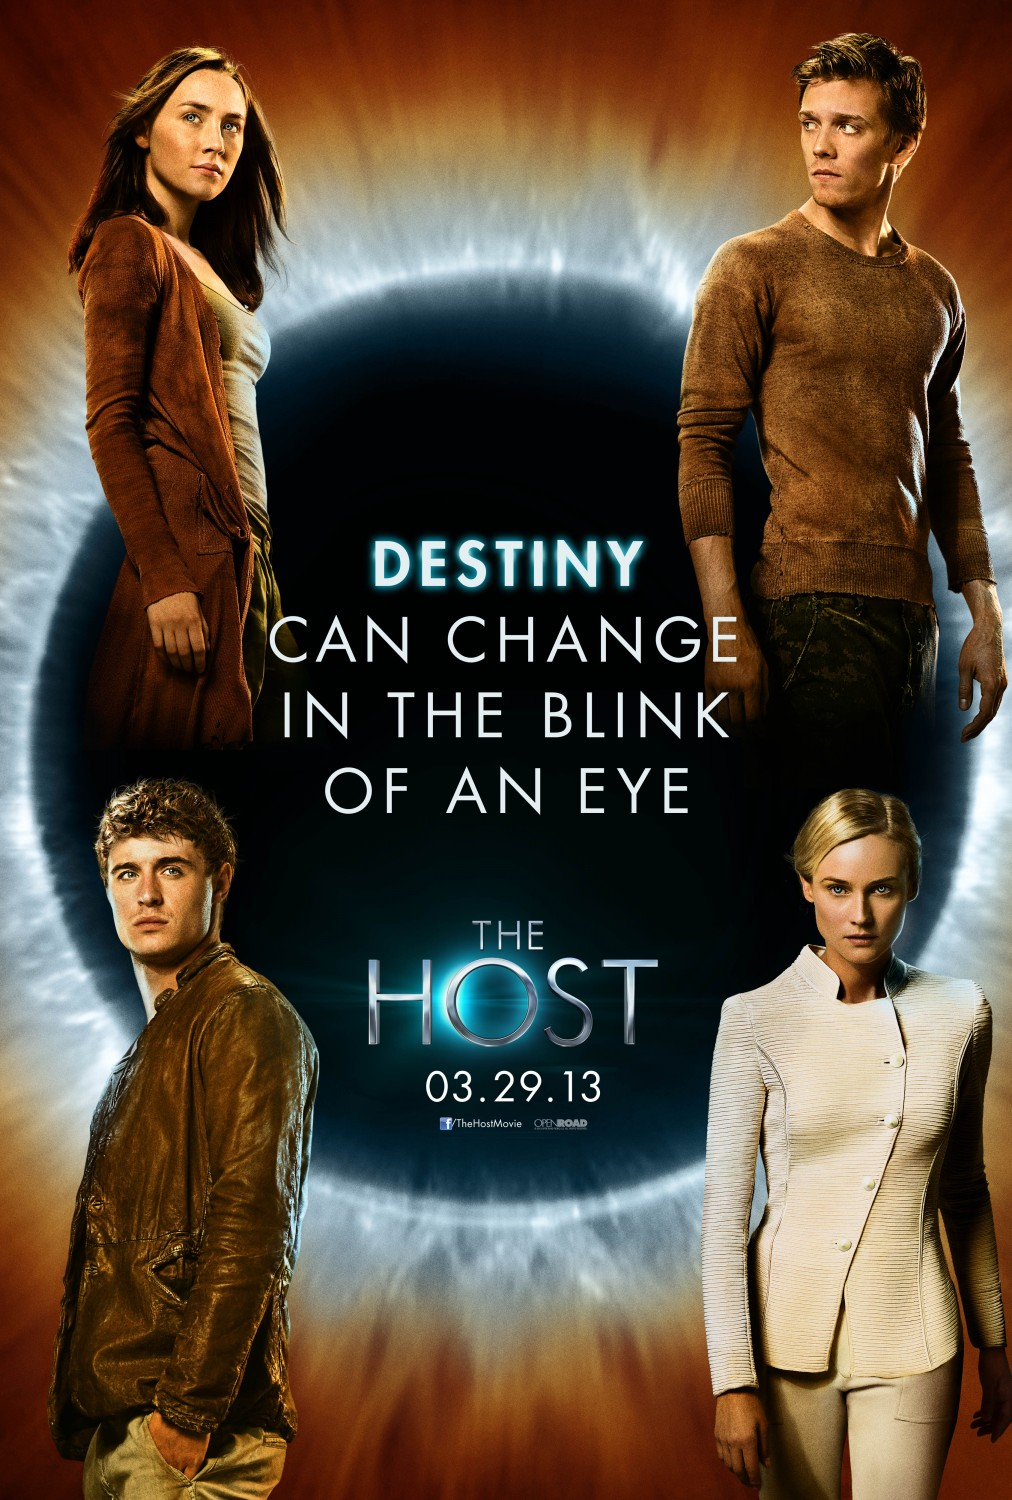 The Host Characters poster - The Host Photo (33744774) - Fanpop